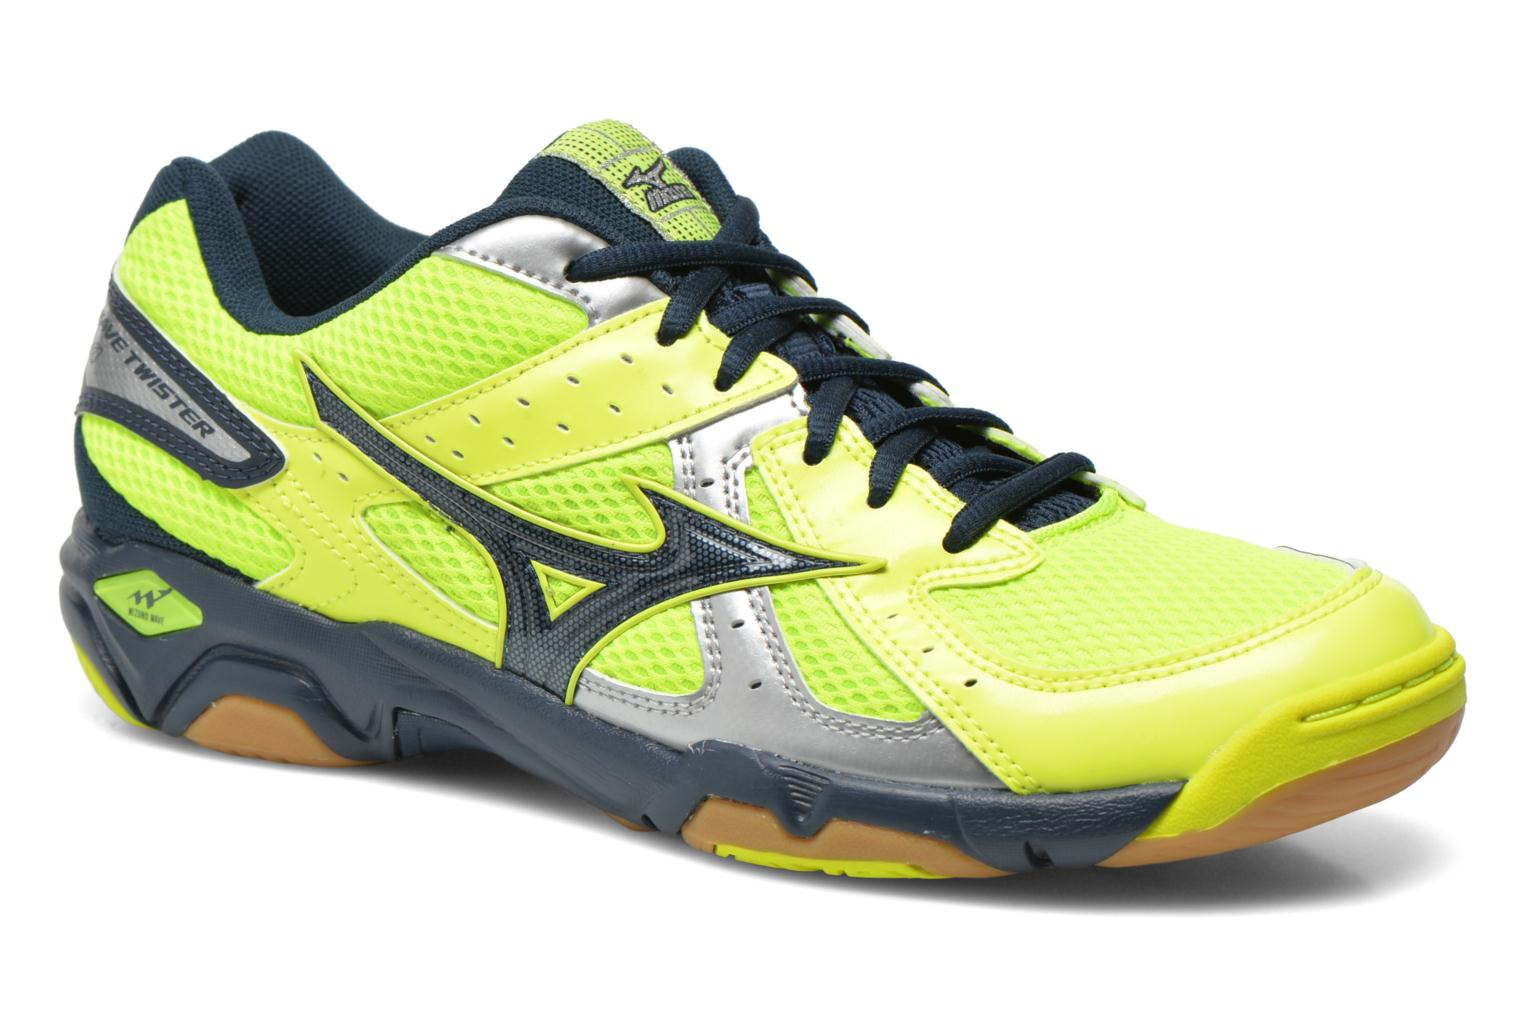 Wave Twister 4 Neon Yellow/Dress Blues/Silver